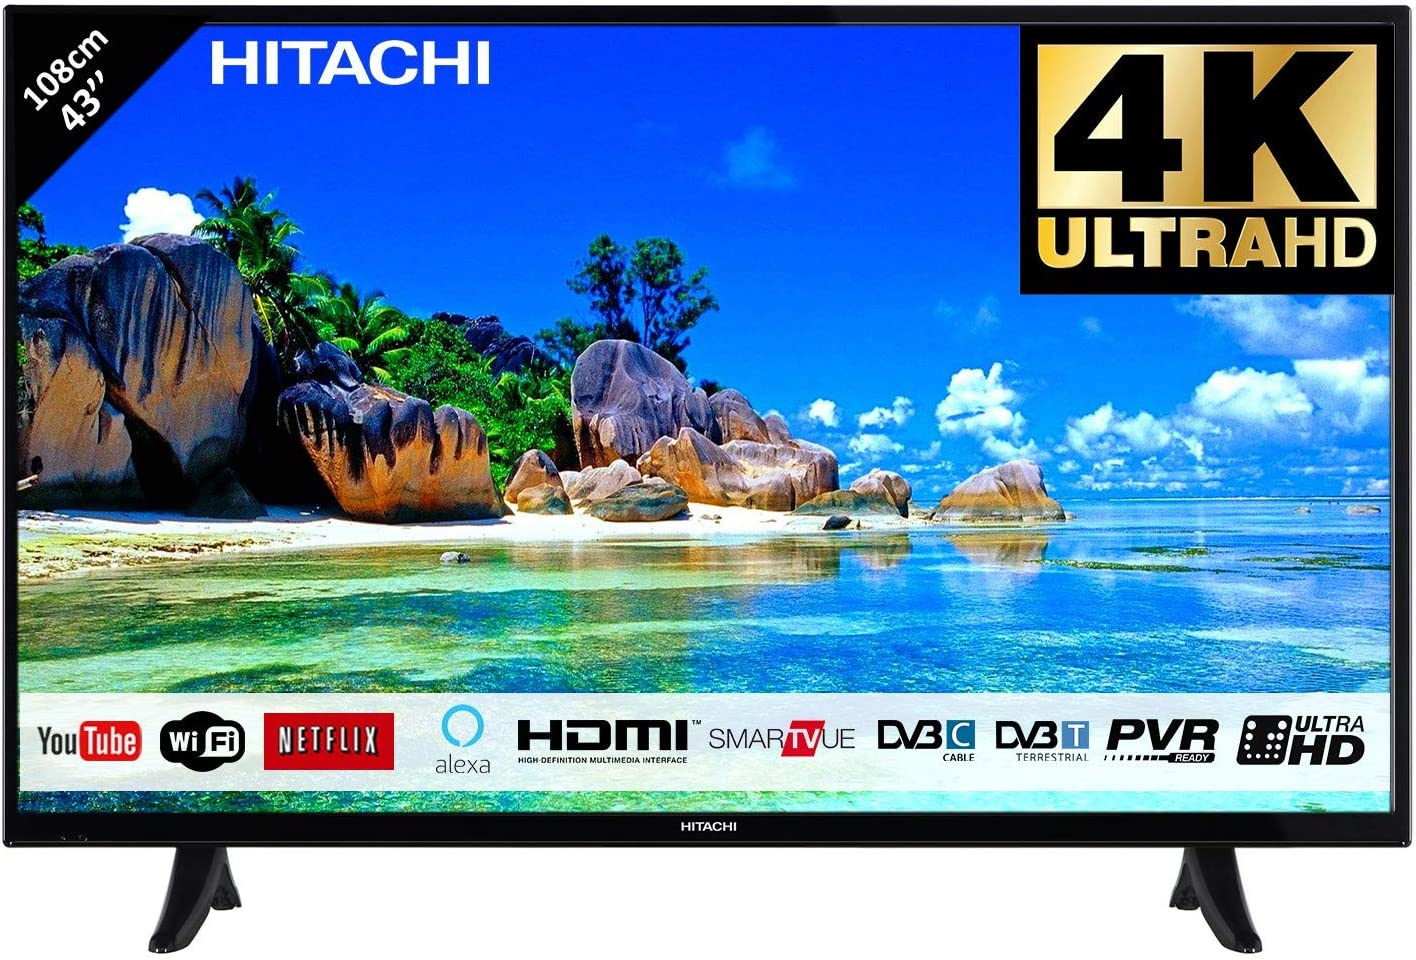 Hitachi TV 43